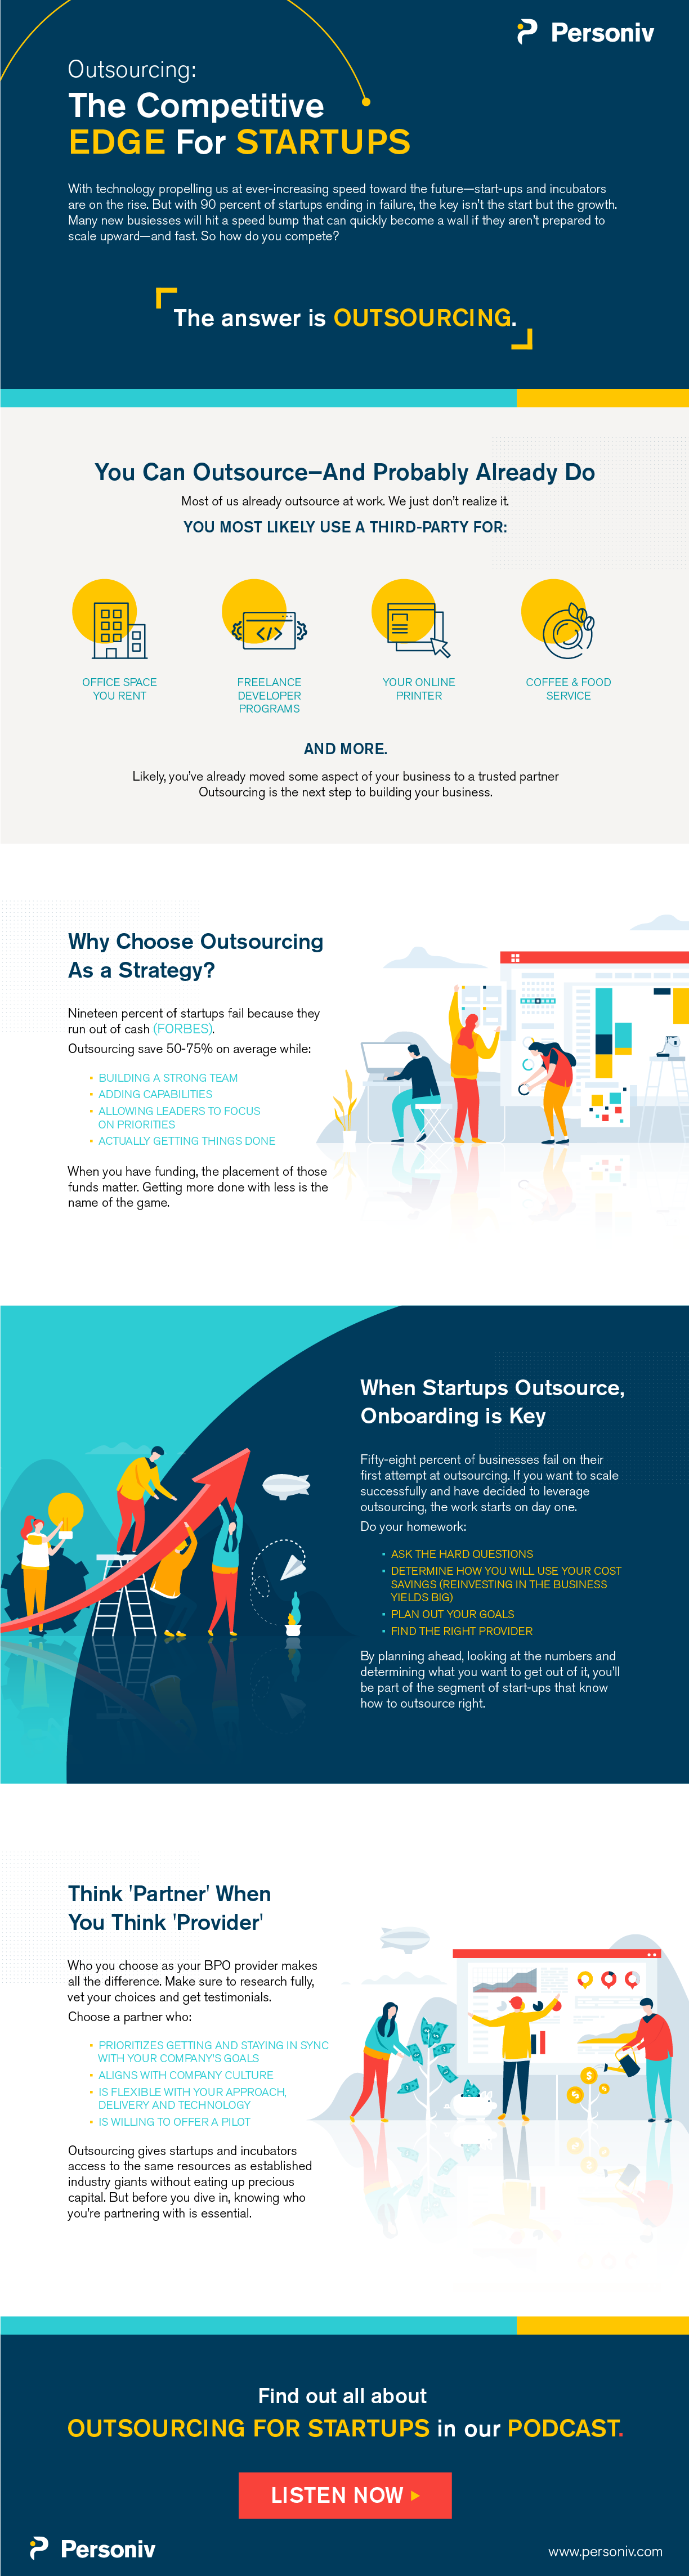 Smart outsourcing for Startups Infographic